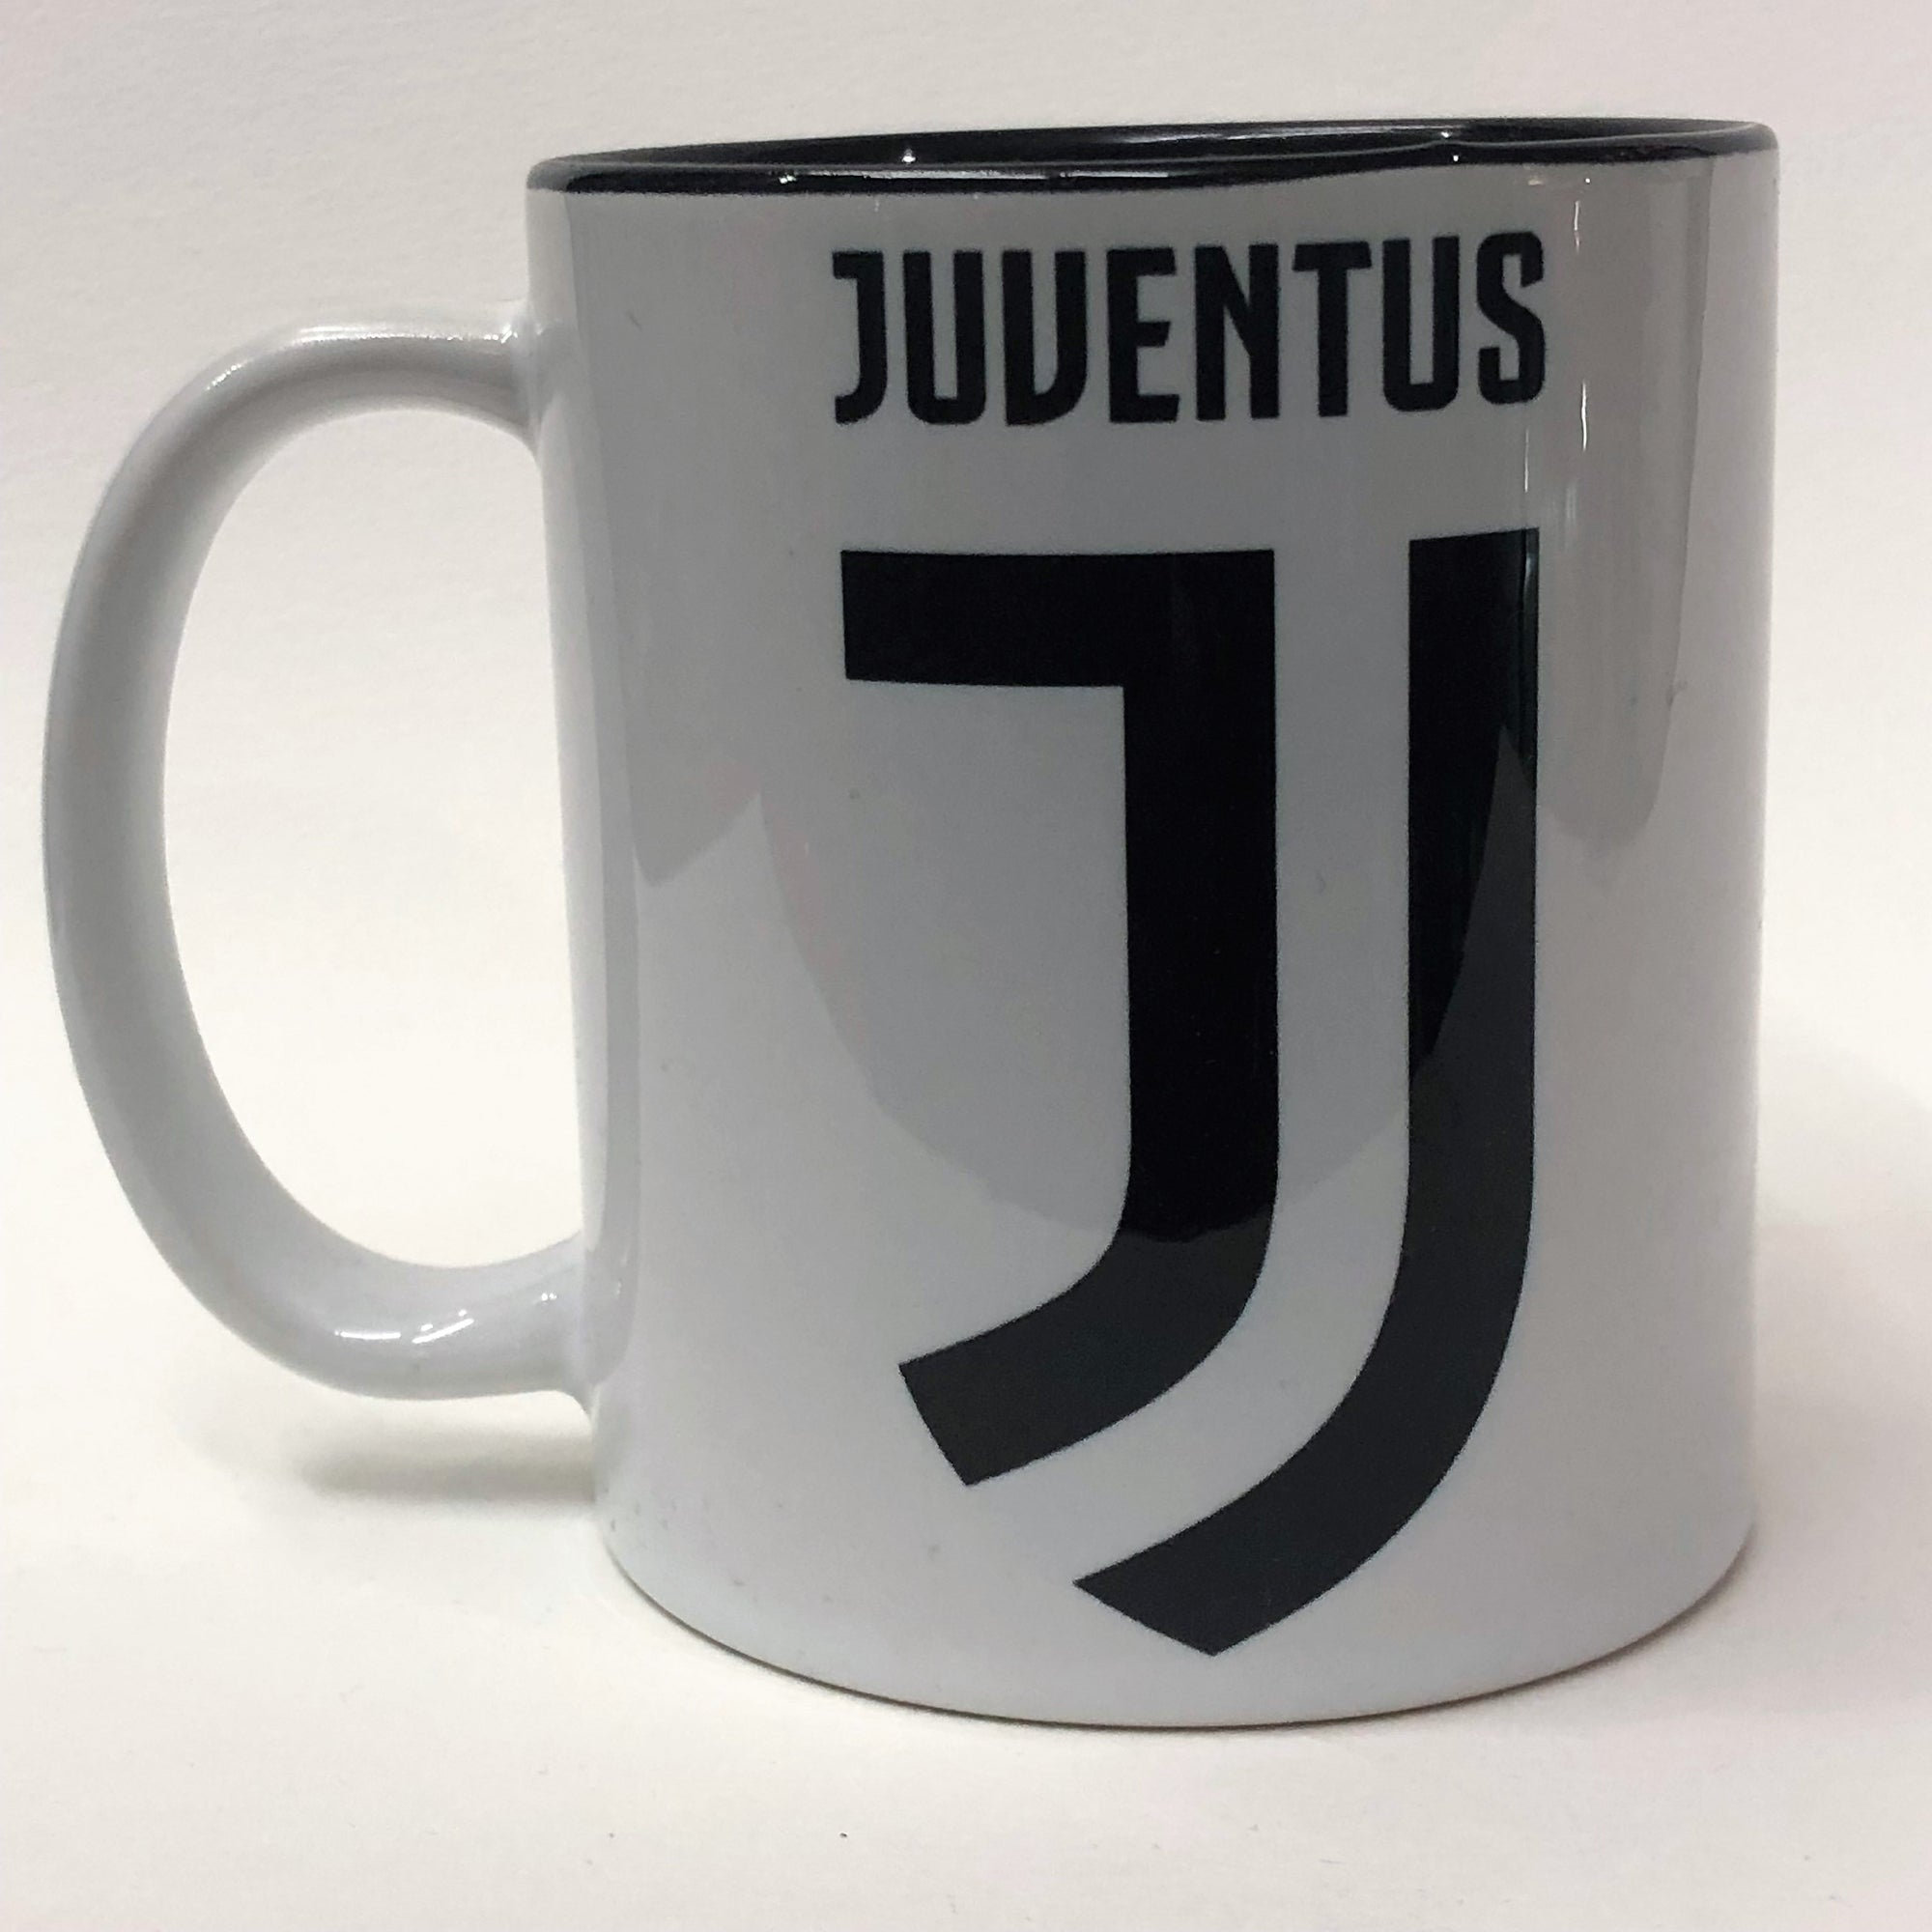 Juventus Coffee Mug